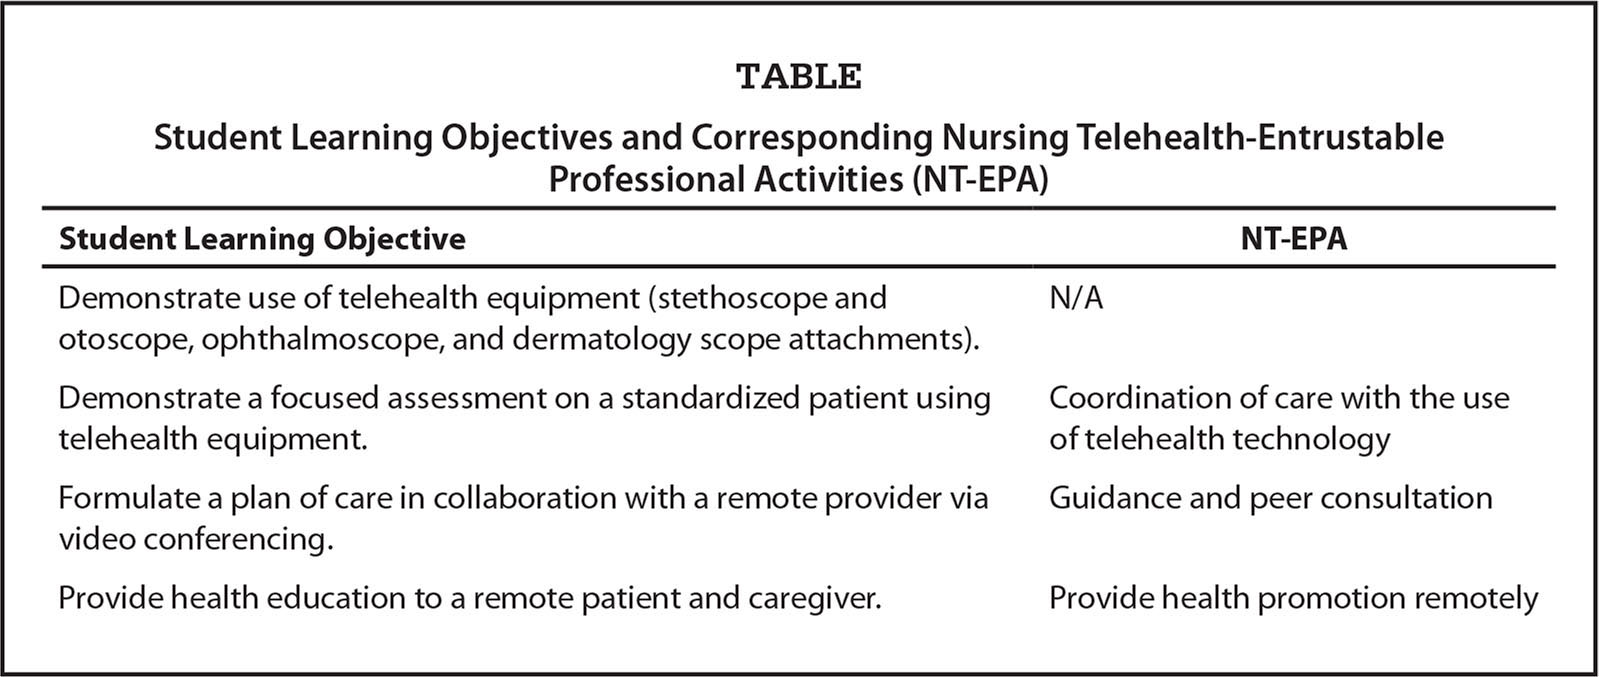 Student Learning Objectives and Corresponding Nursing Telehealth-Entrustable Professional Activities (NT-EPA)